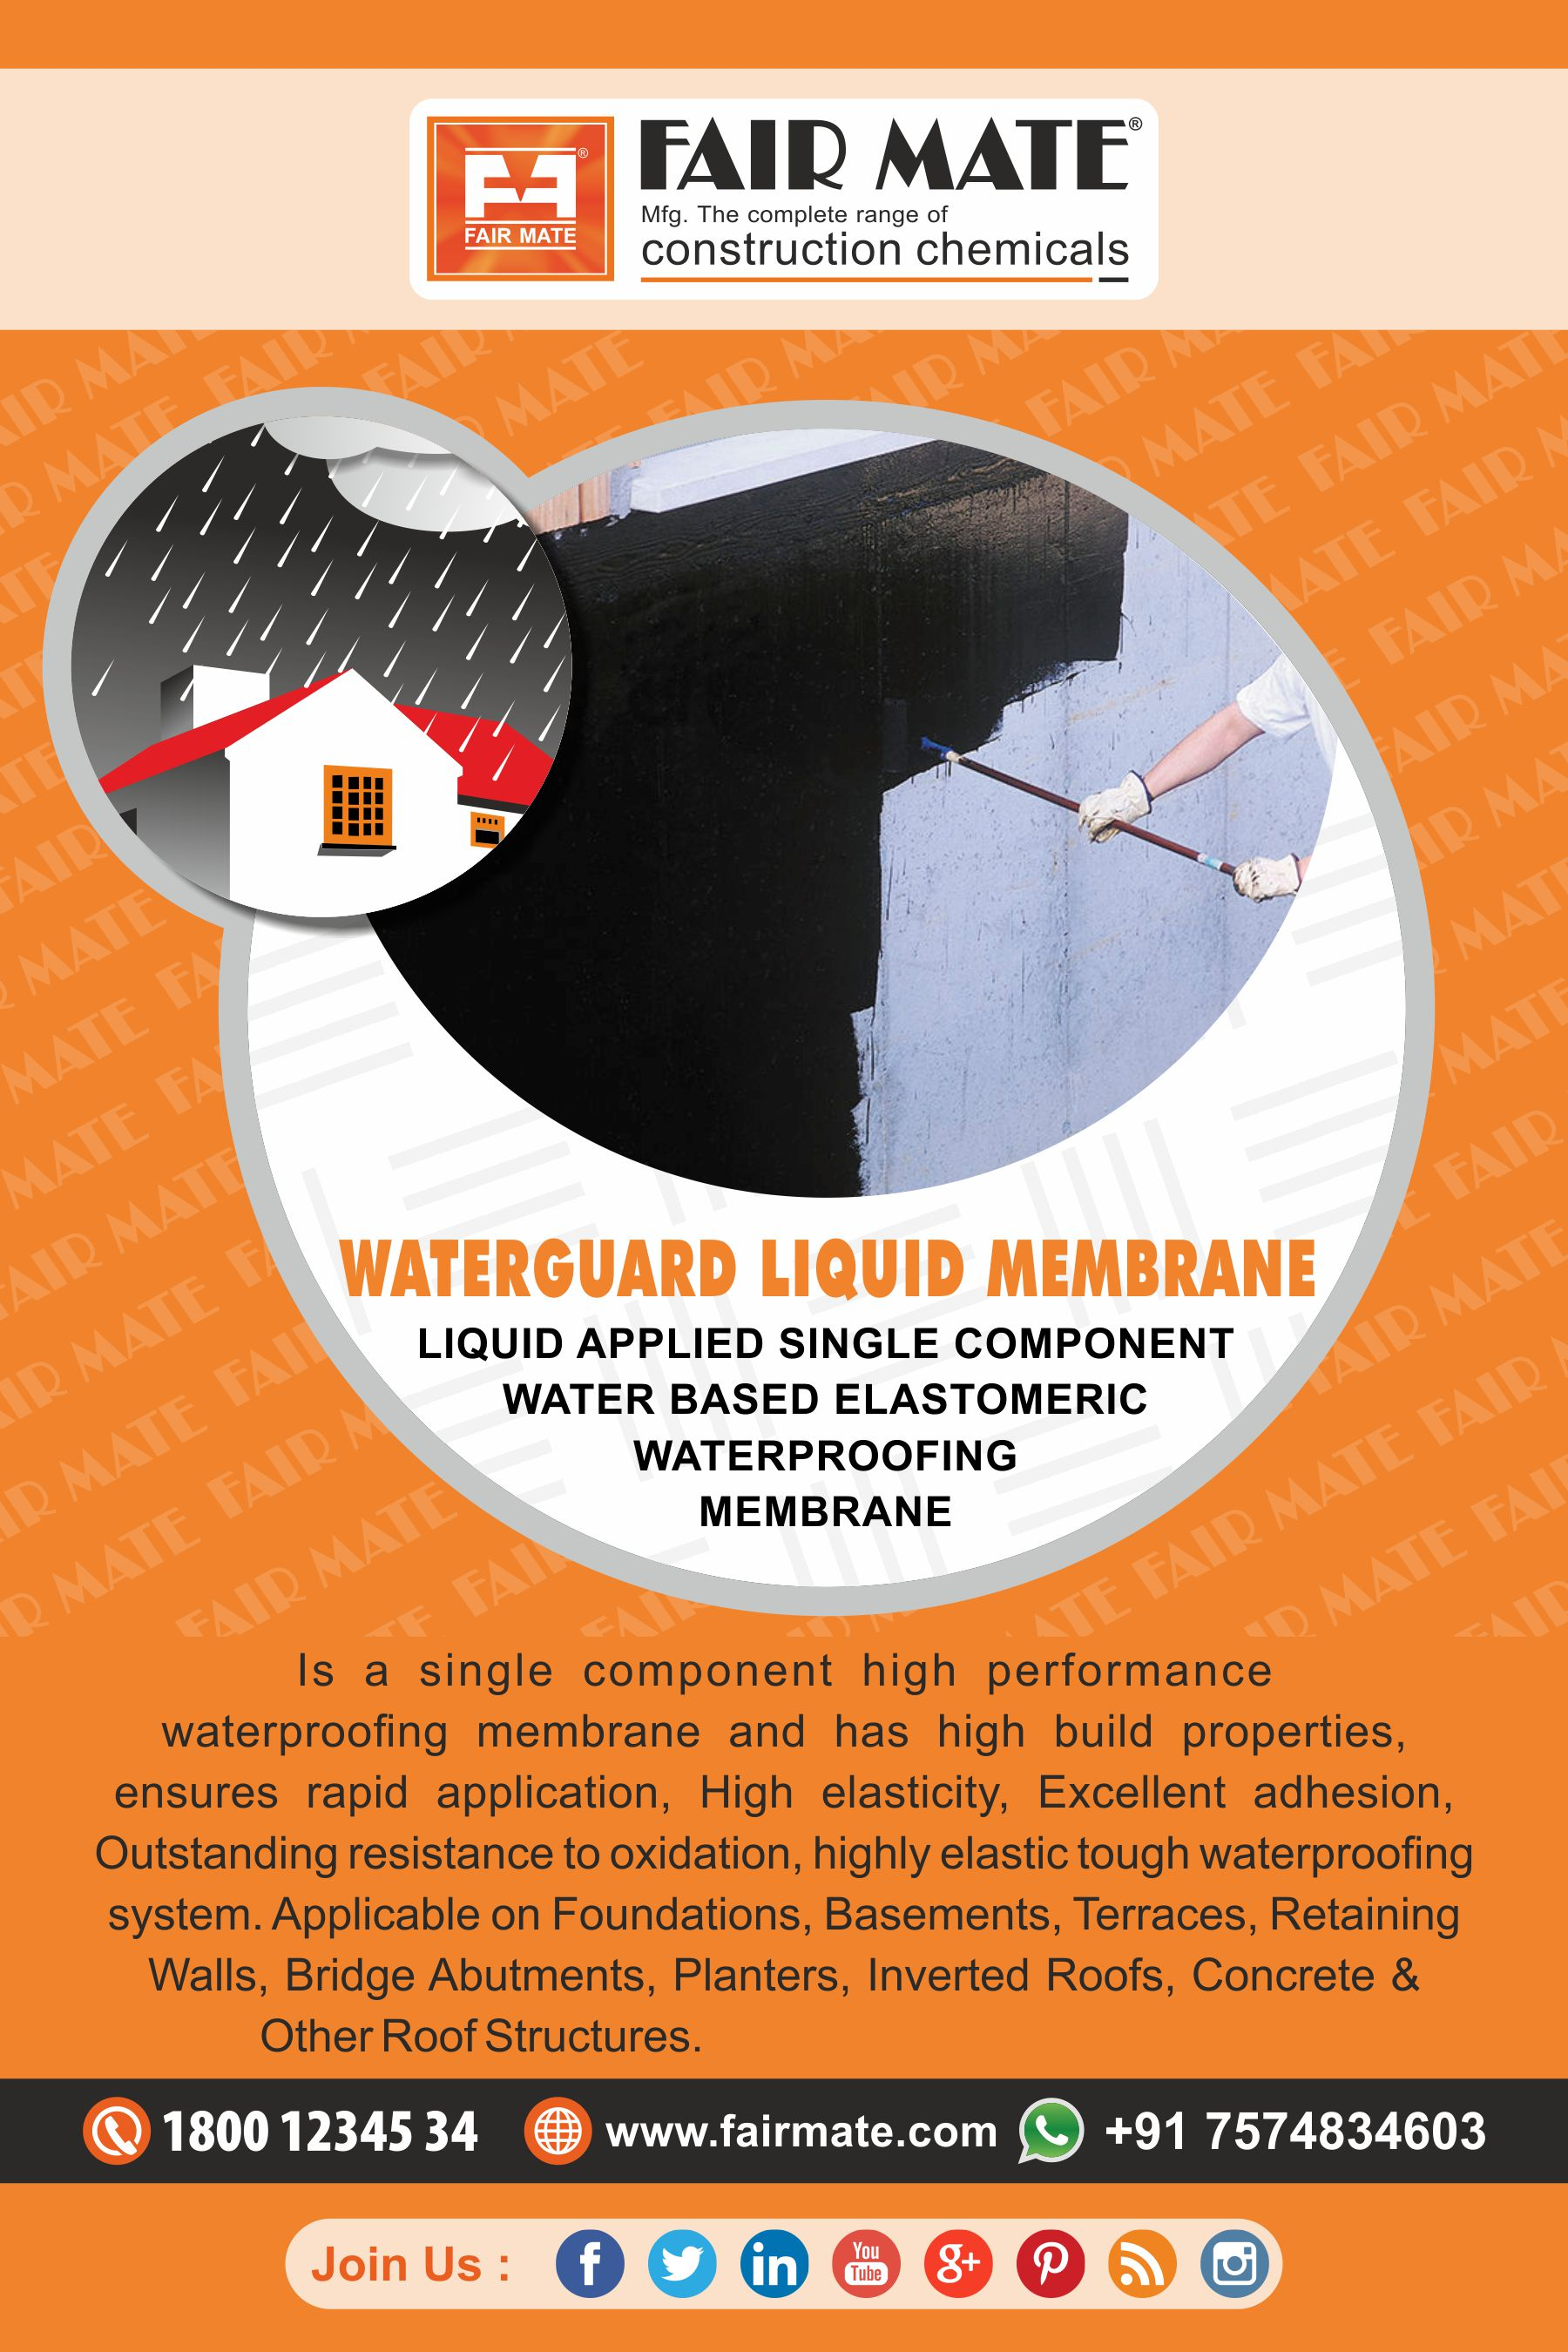 WATERGUARD LIQUID MEMBRANE | Fairmate Blog